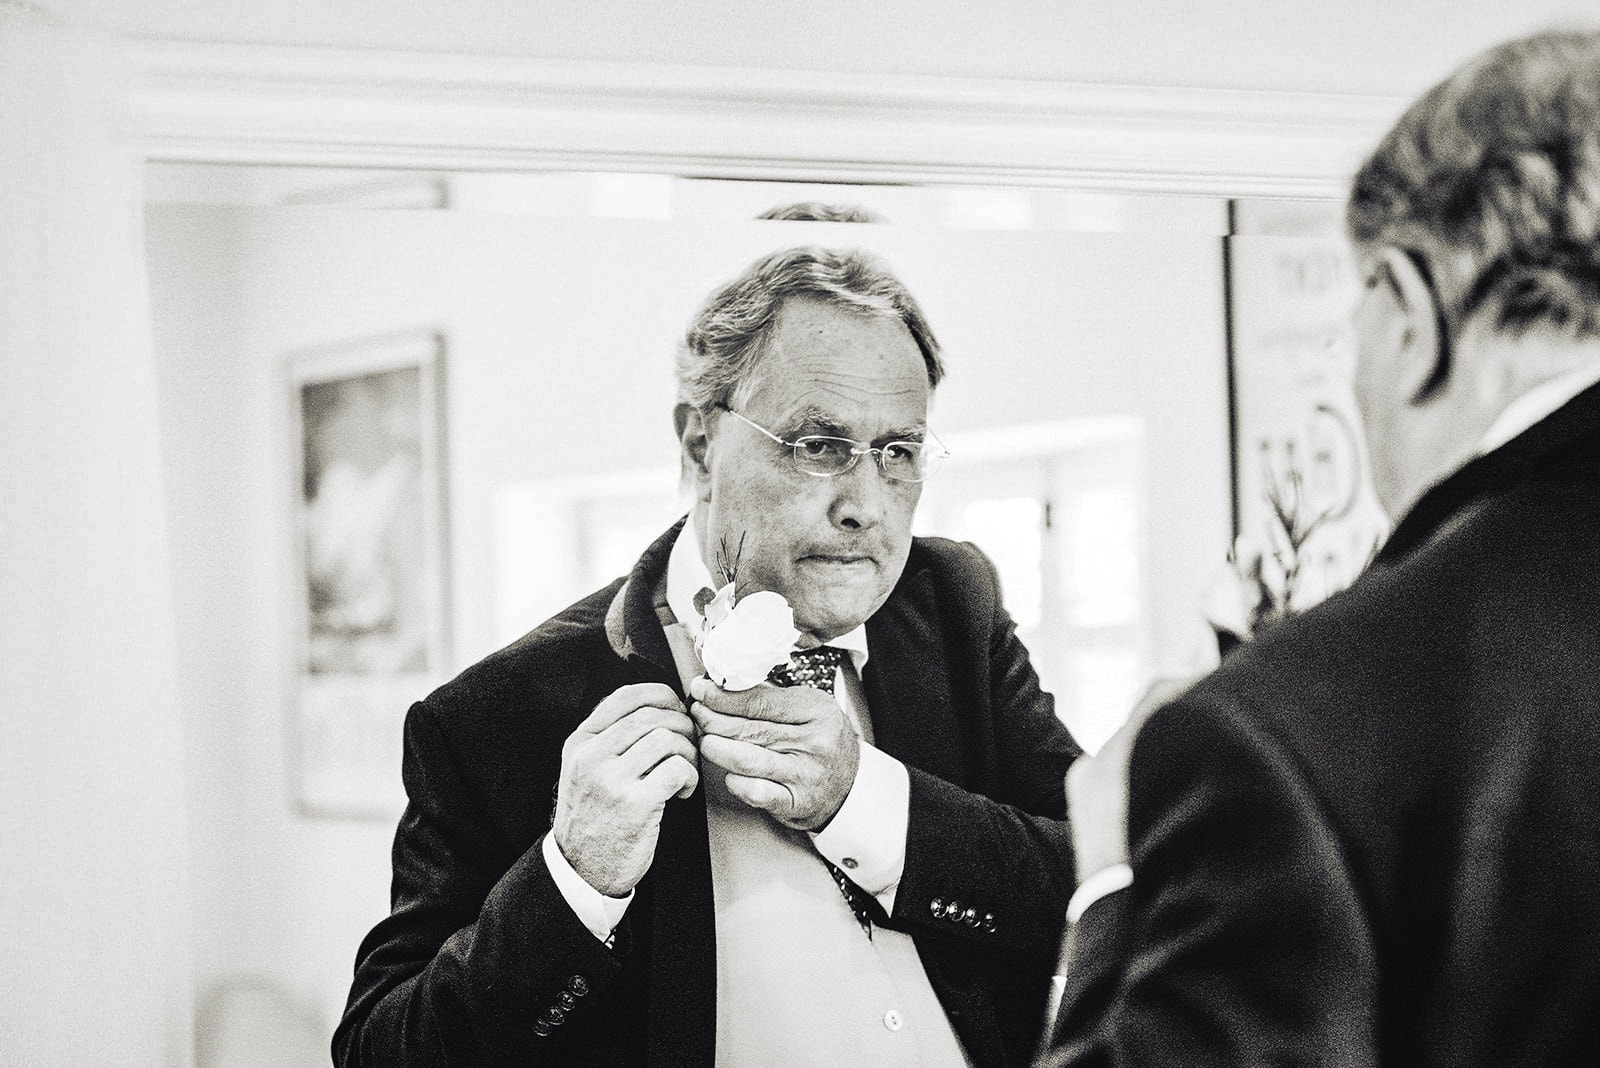 The father of the bride putting on his white rose boutonnière